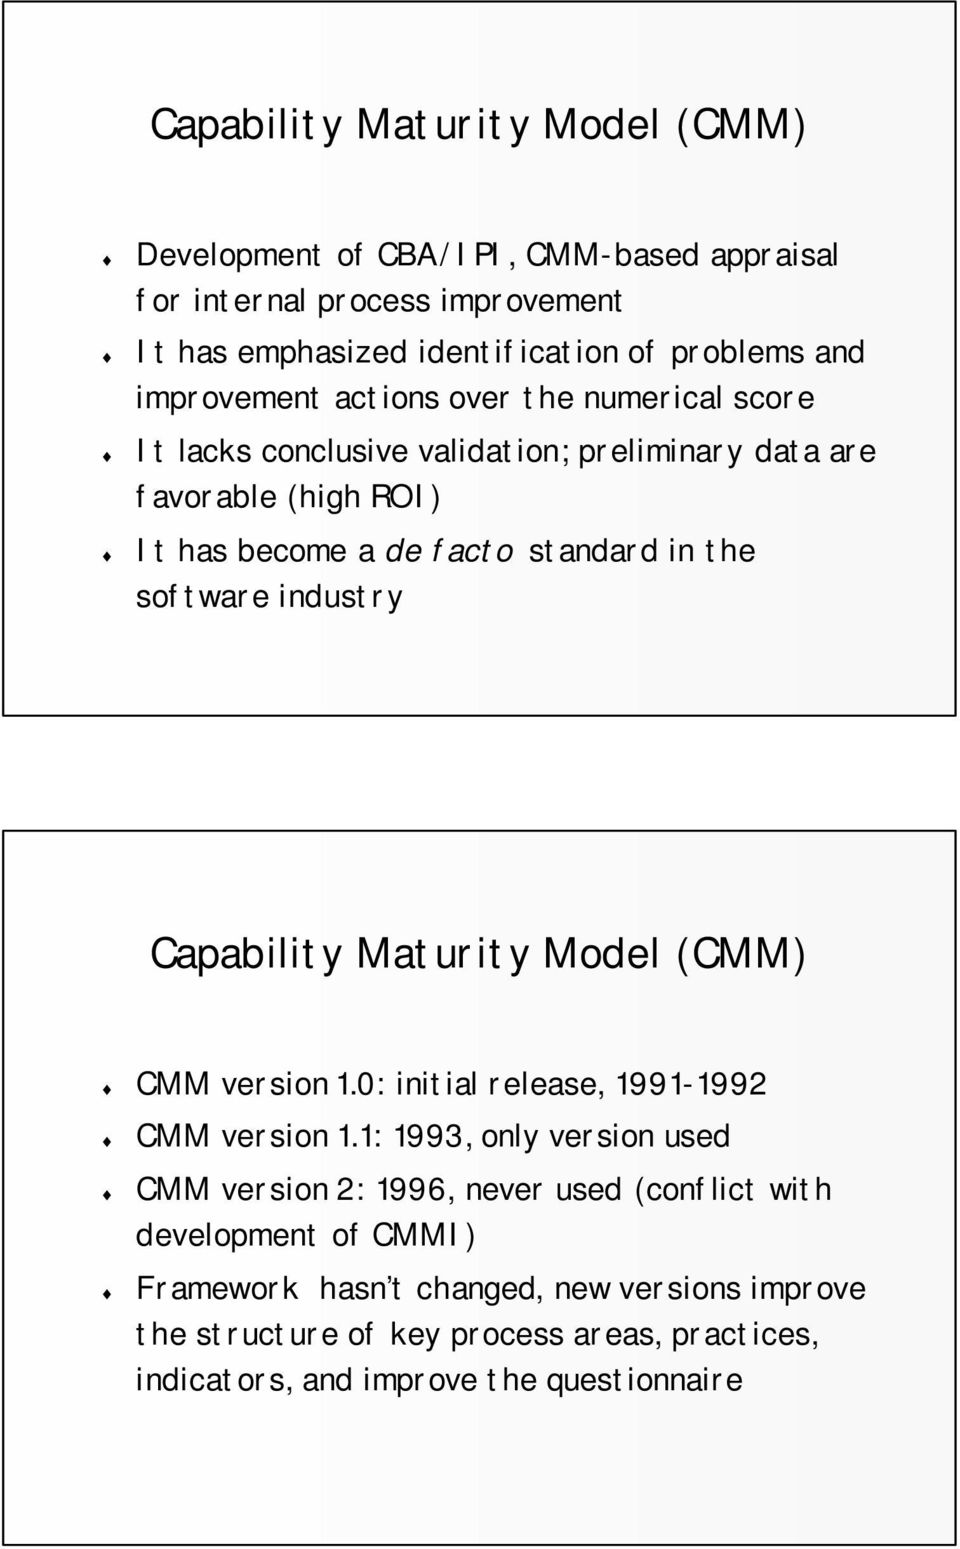 software industry Capability Maturity Model (CMM) CMM version 1.0: initial  release, 1991